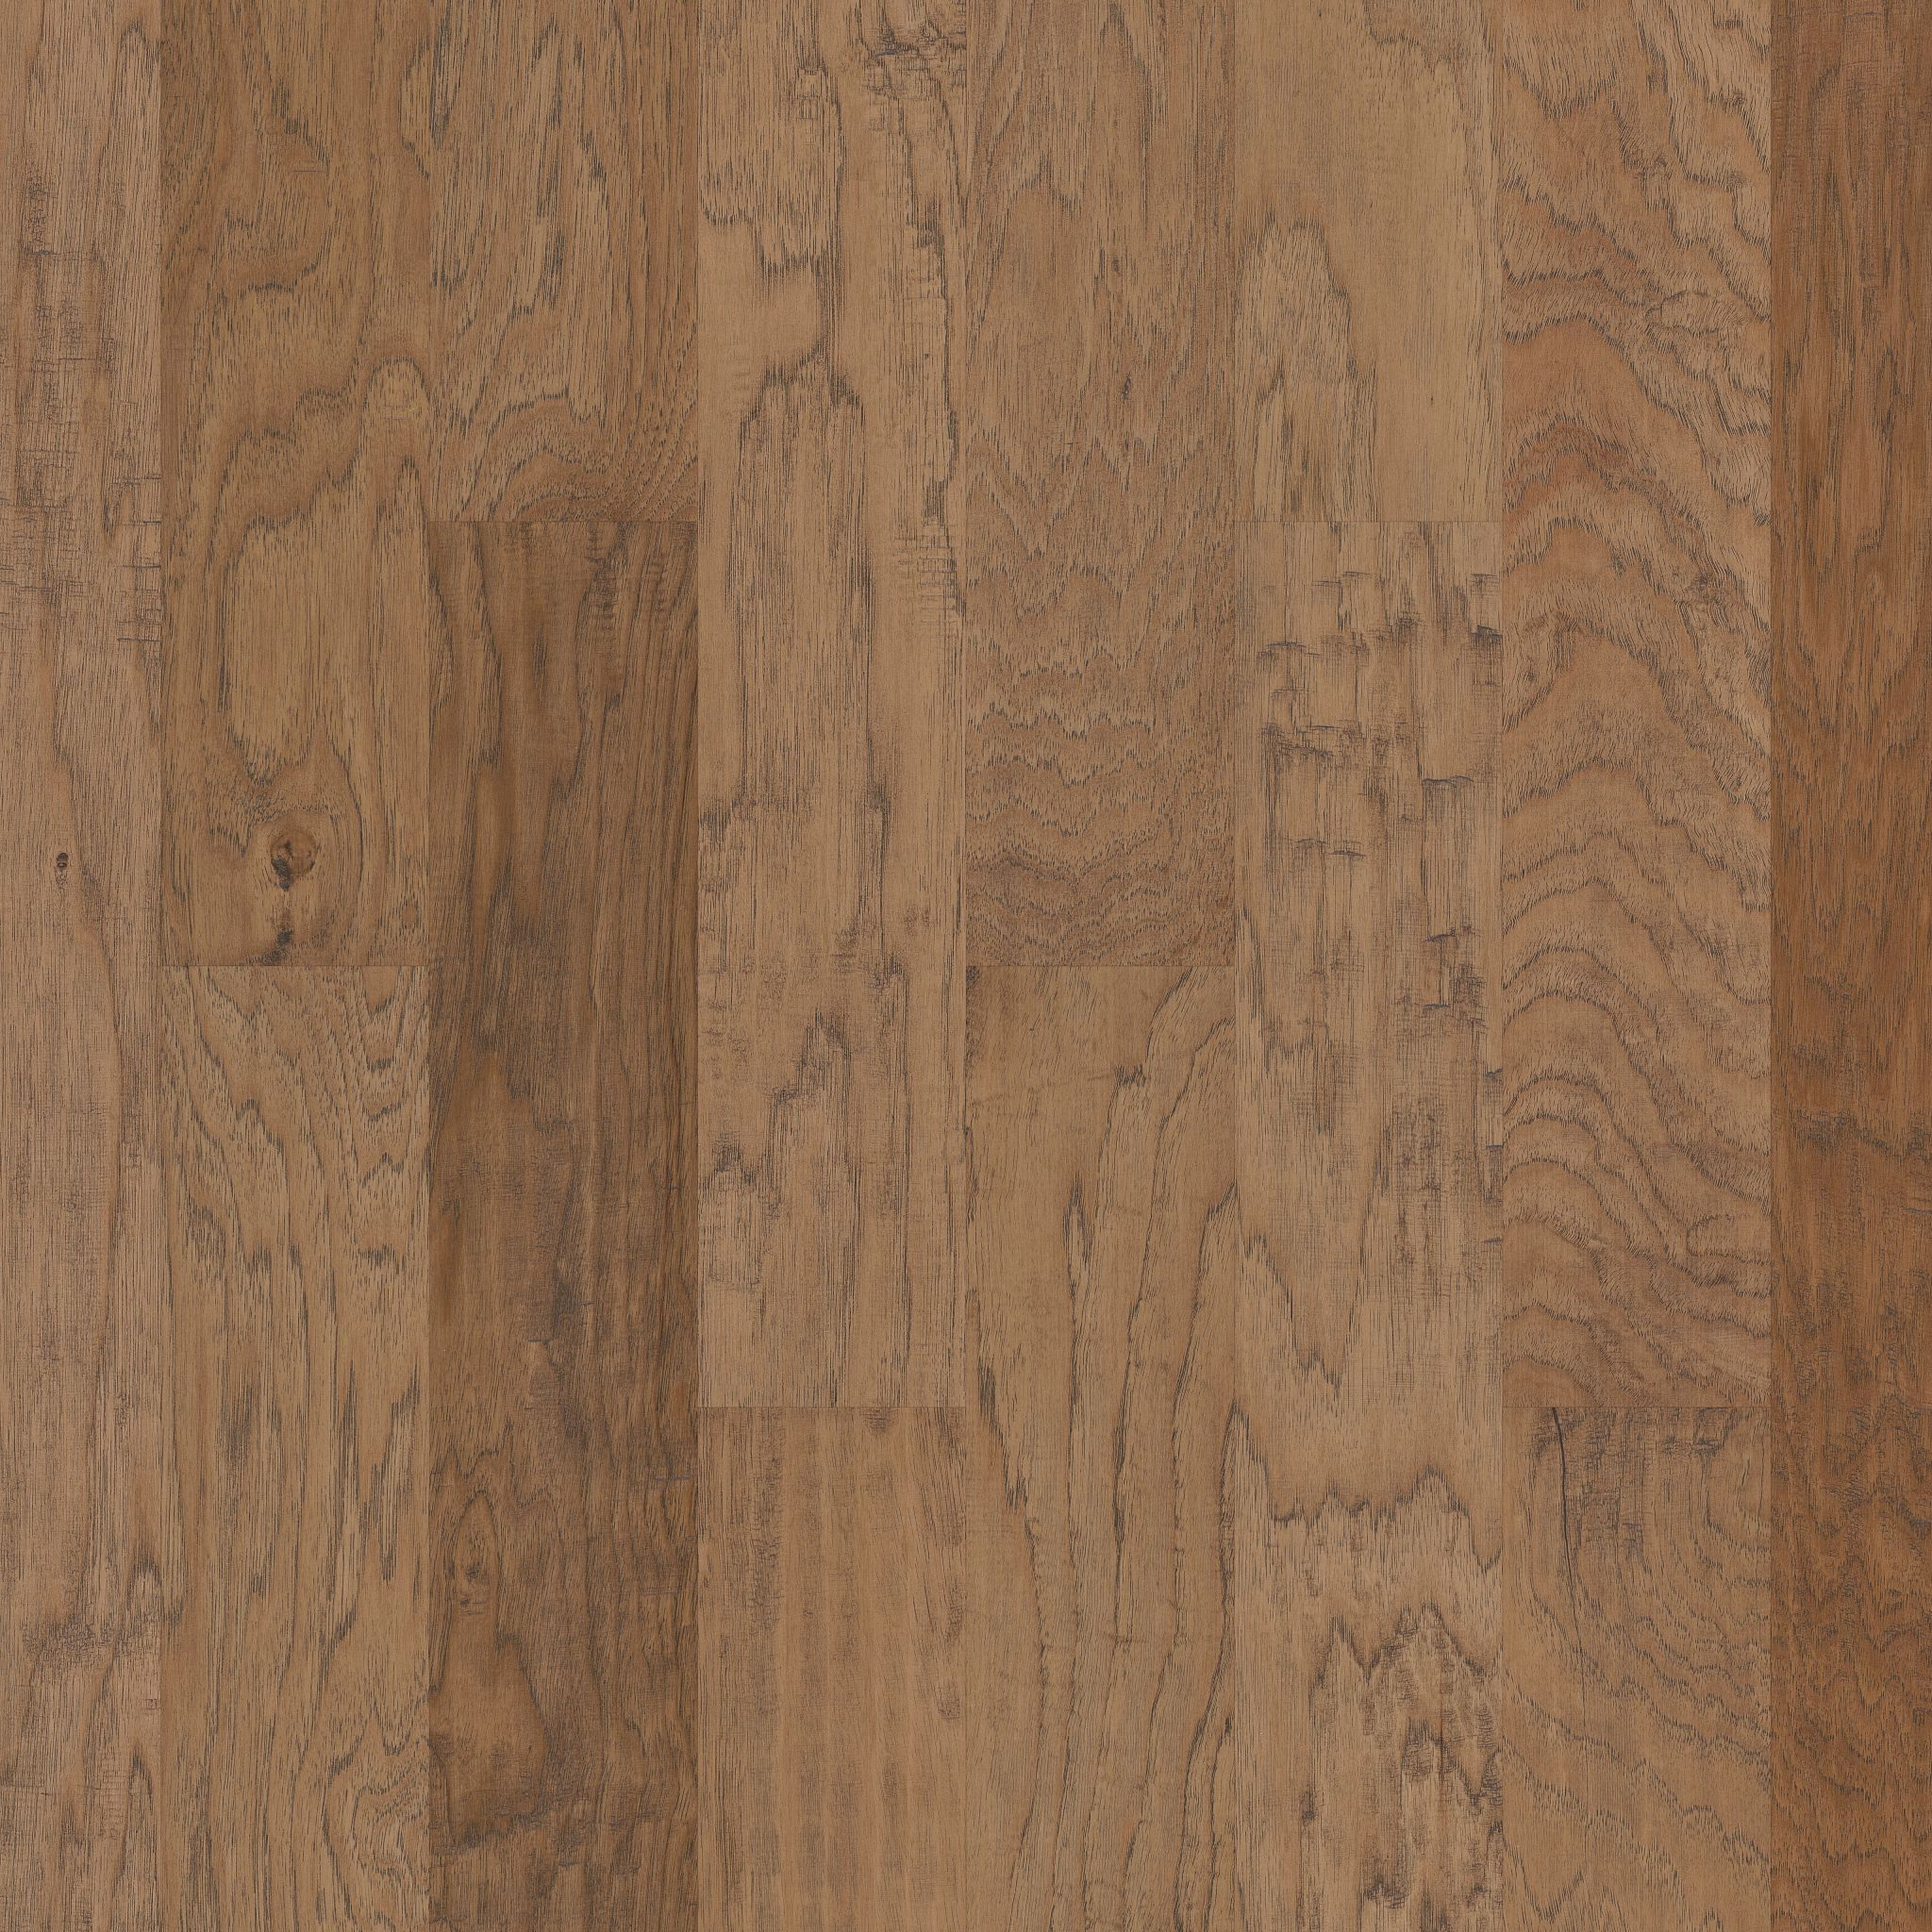 Style name and number: Sequoia Hickory 5″ SW539 and color name and number: Bravo 02002